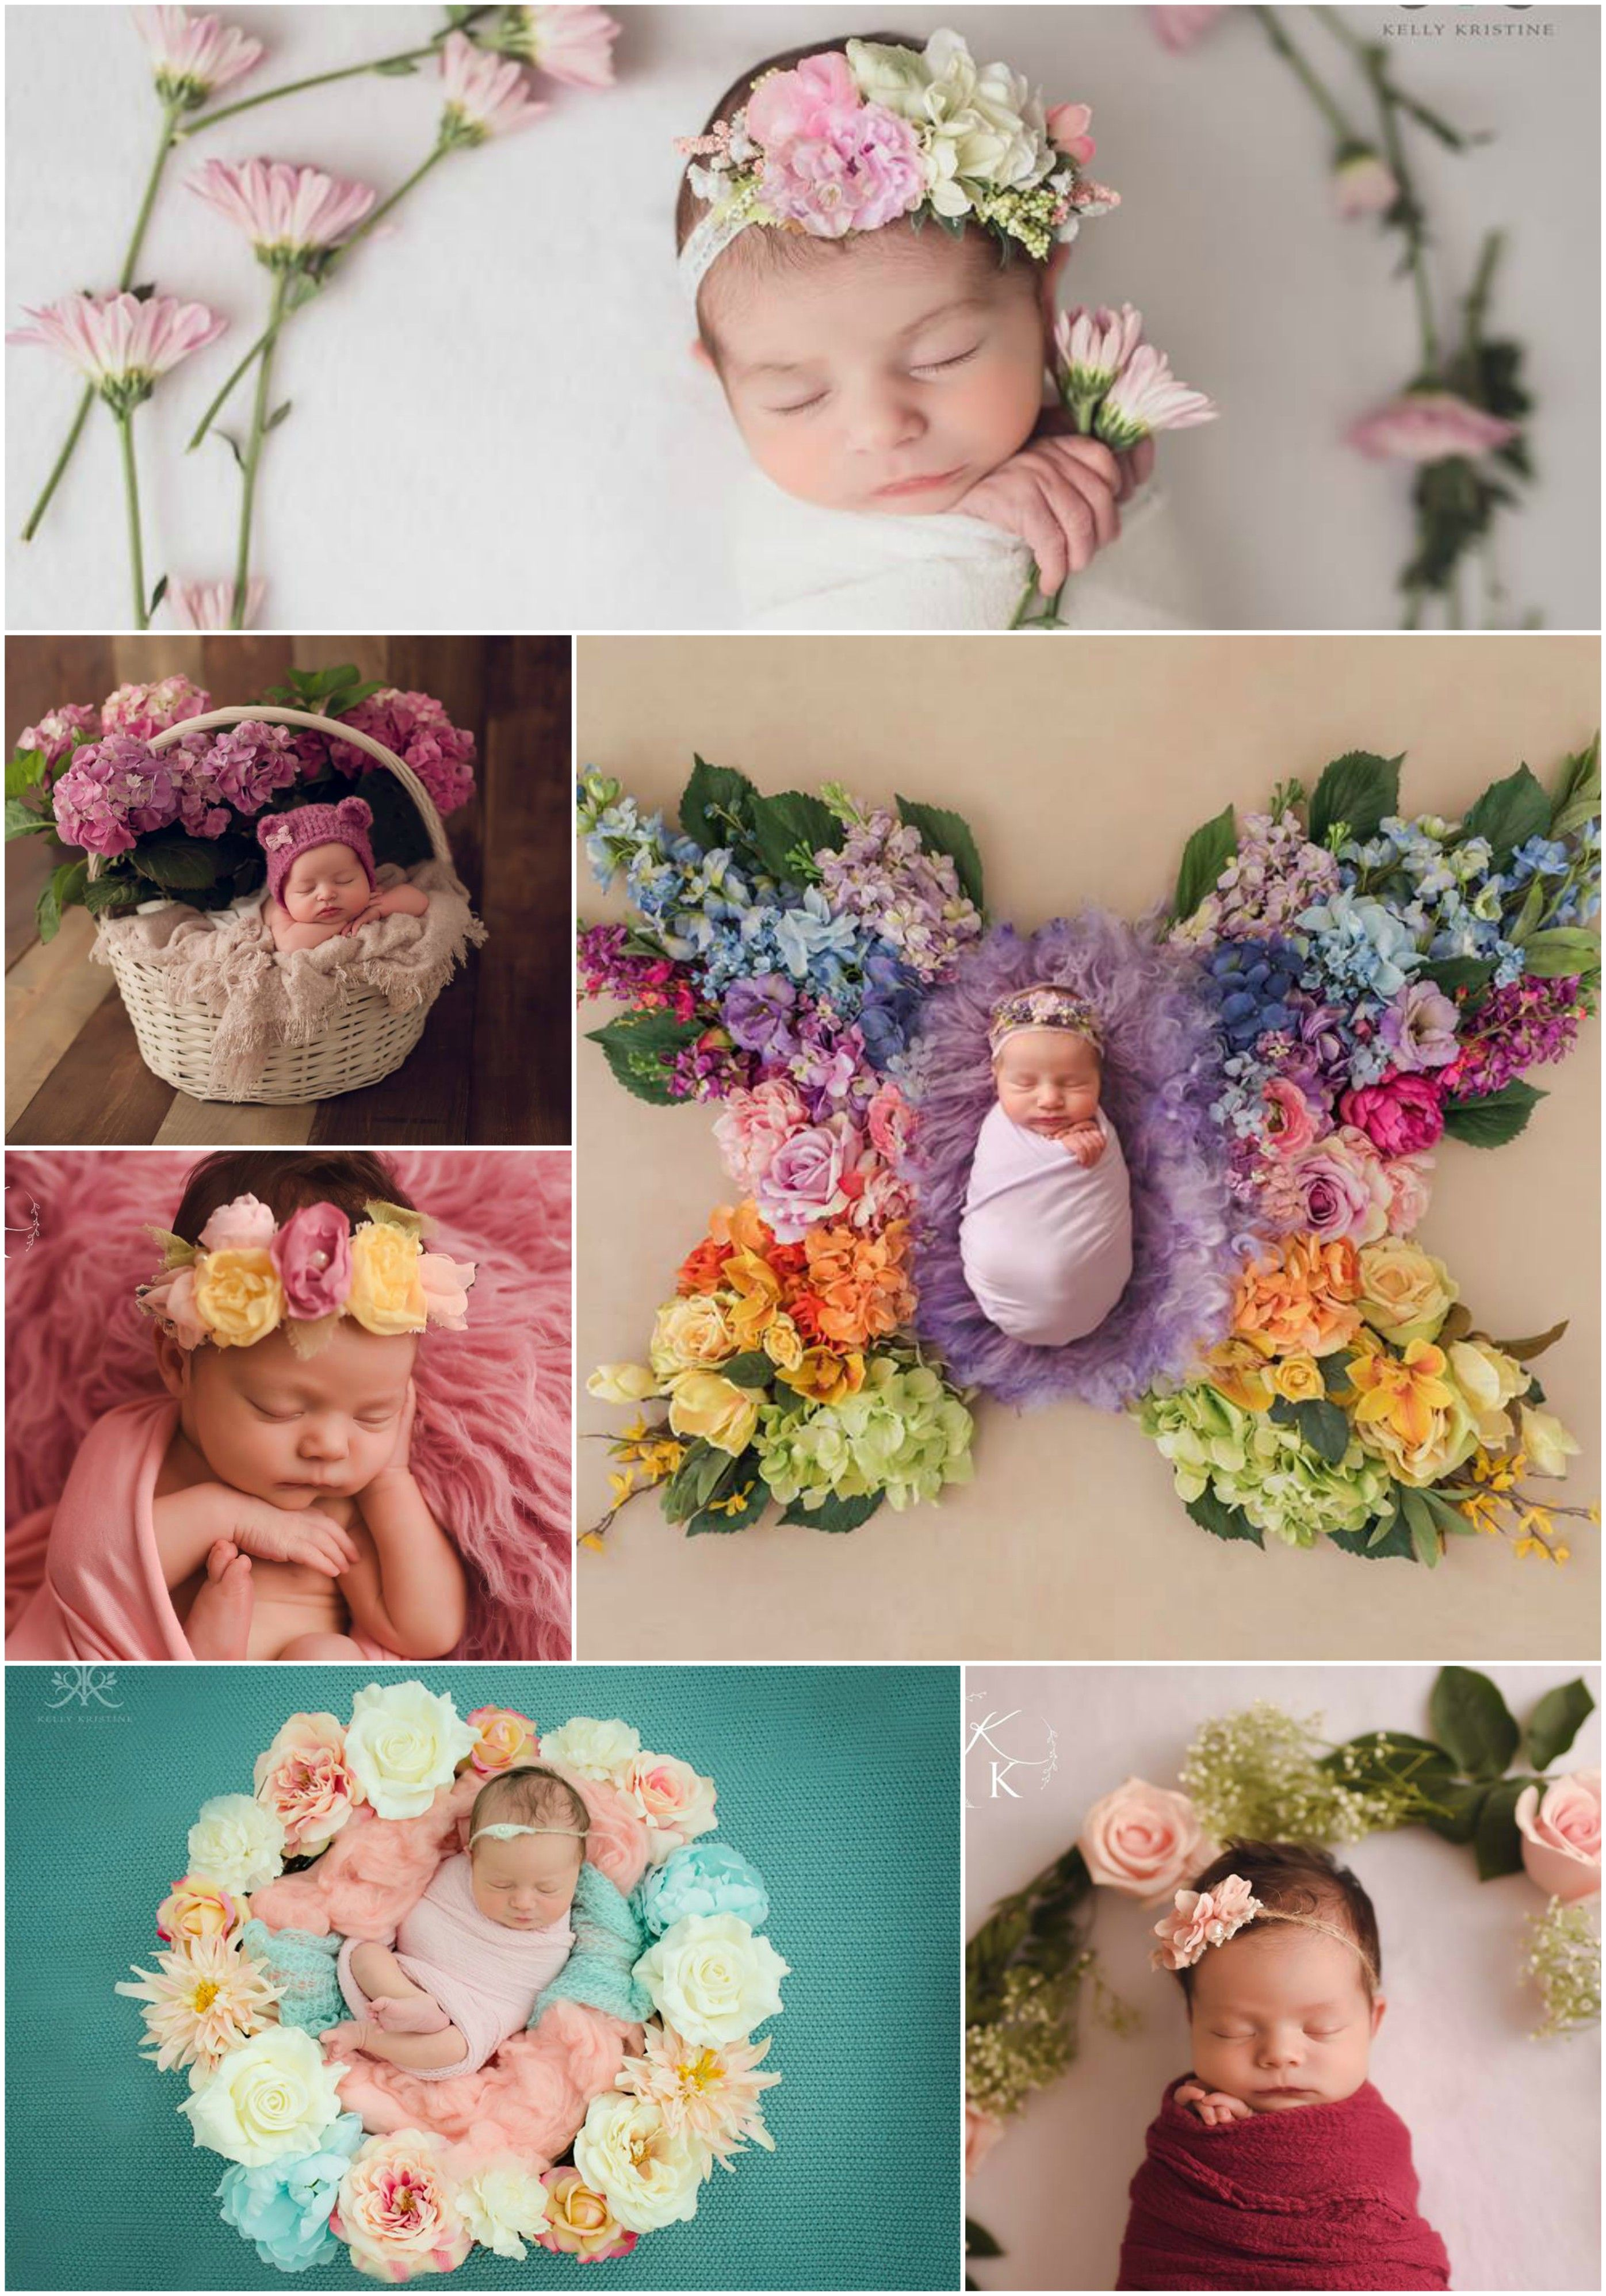 Baby Flowers Images Newborn Photography